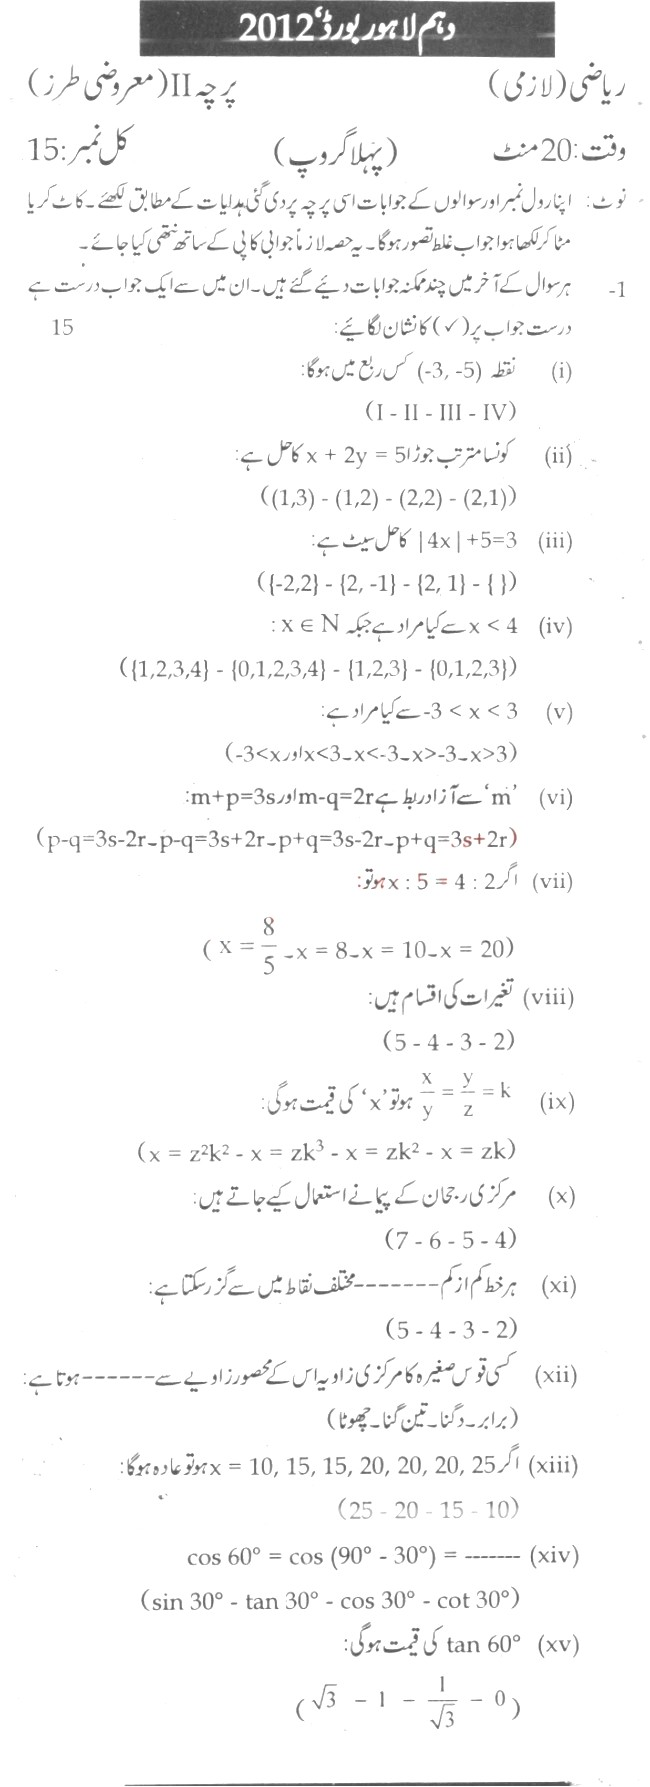 Lahore Board Matric Mathematics Past Papers 2012